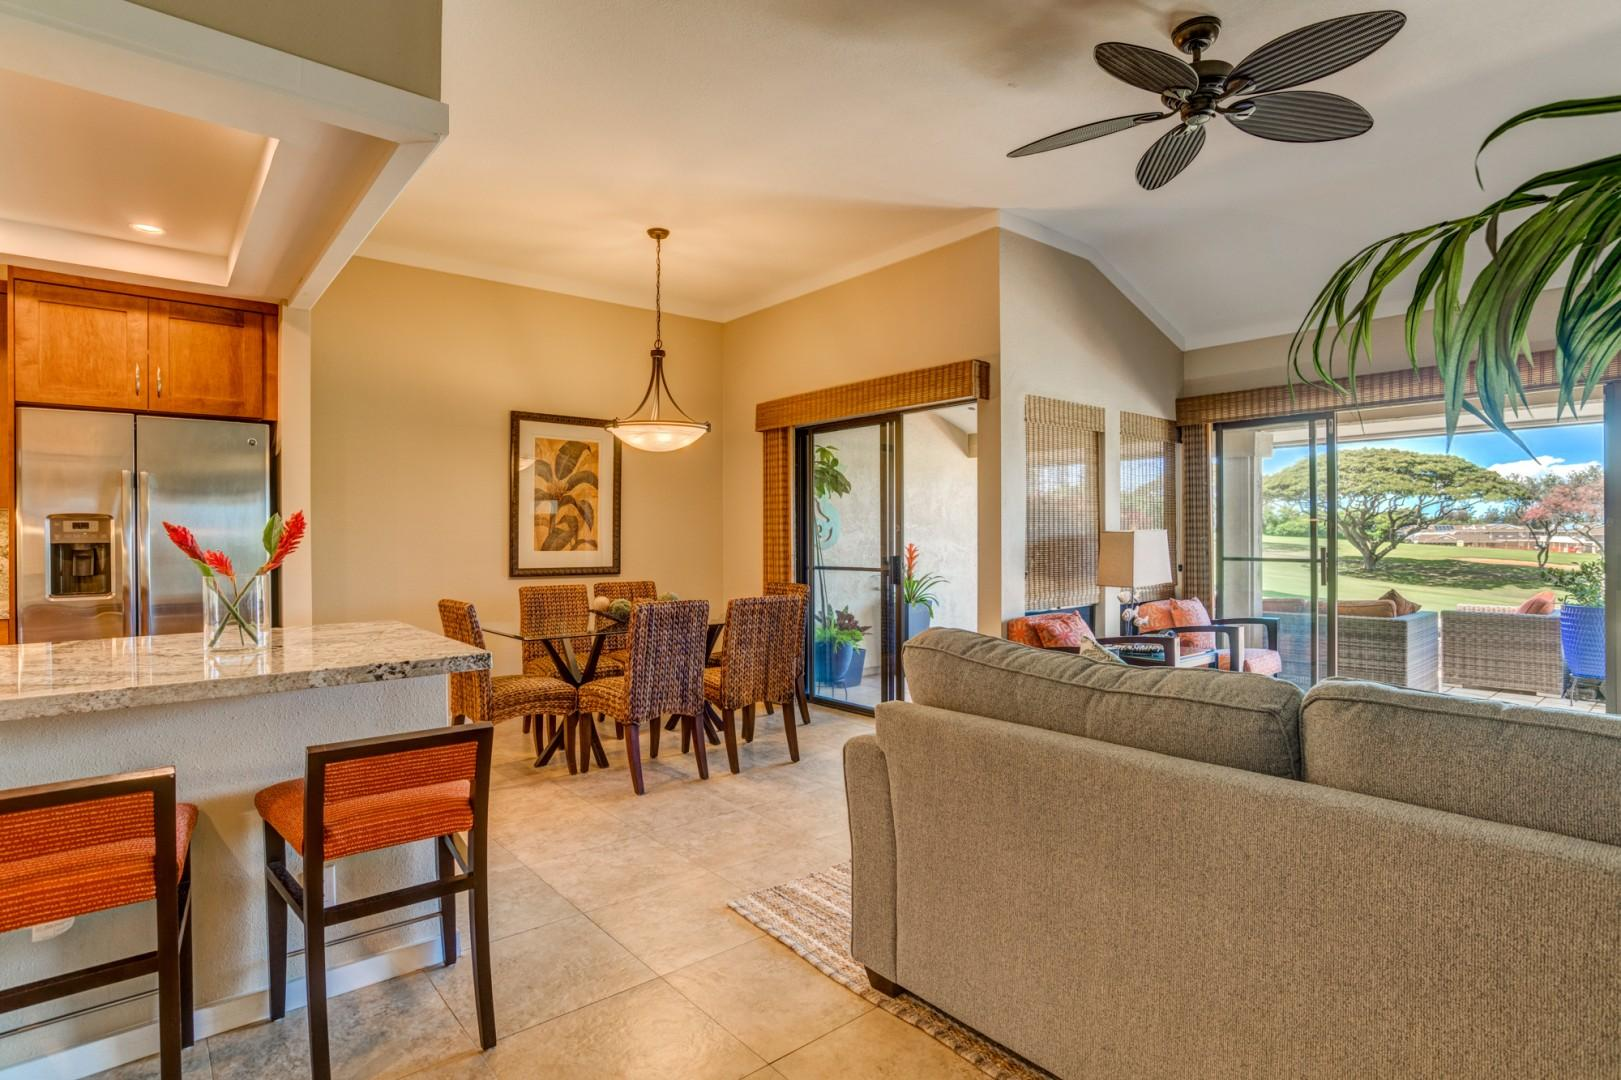 Open floor plan to relax with your ohana